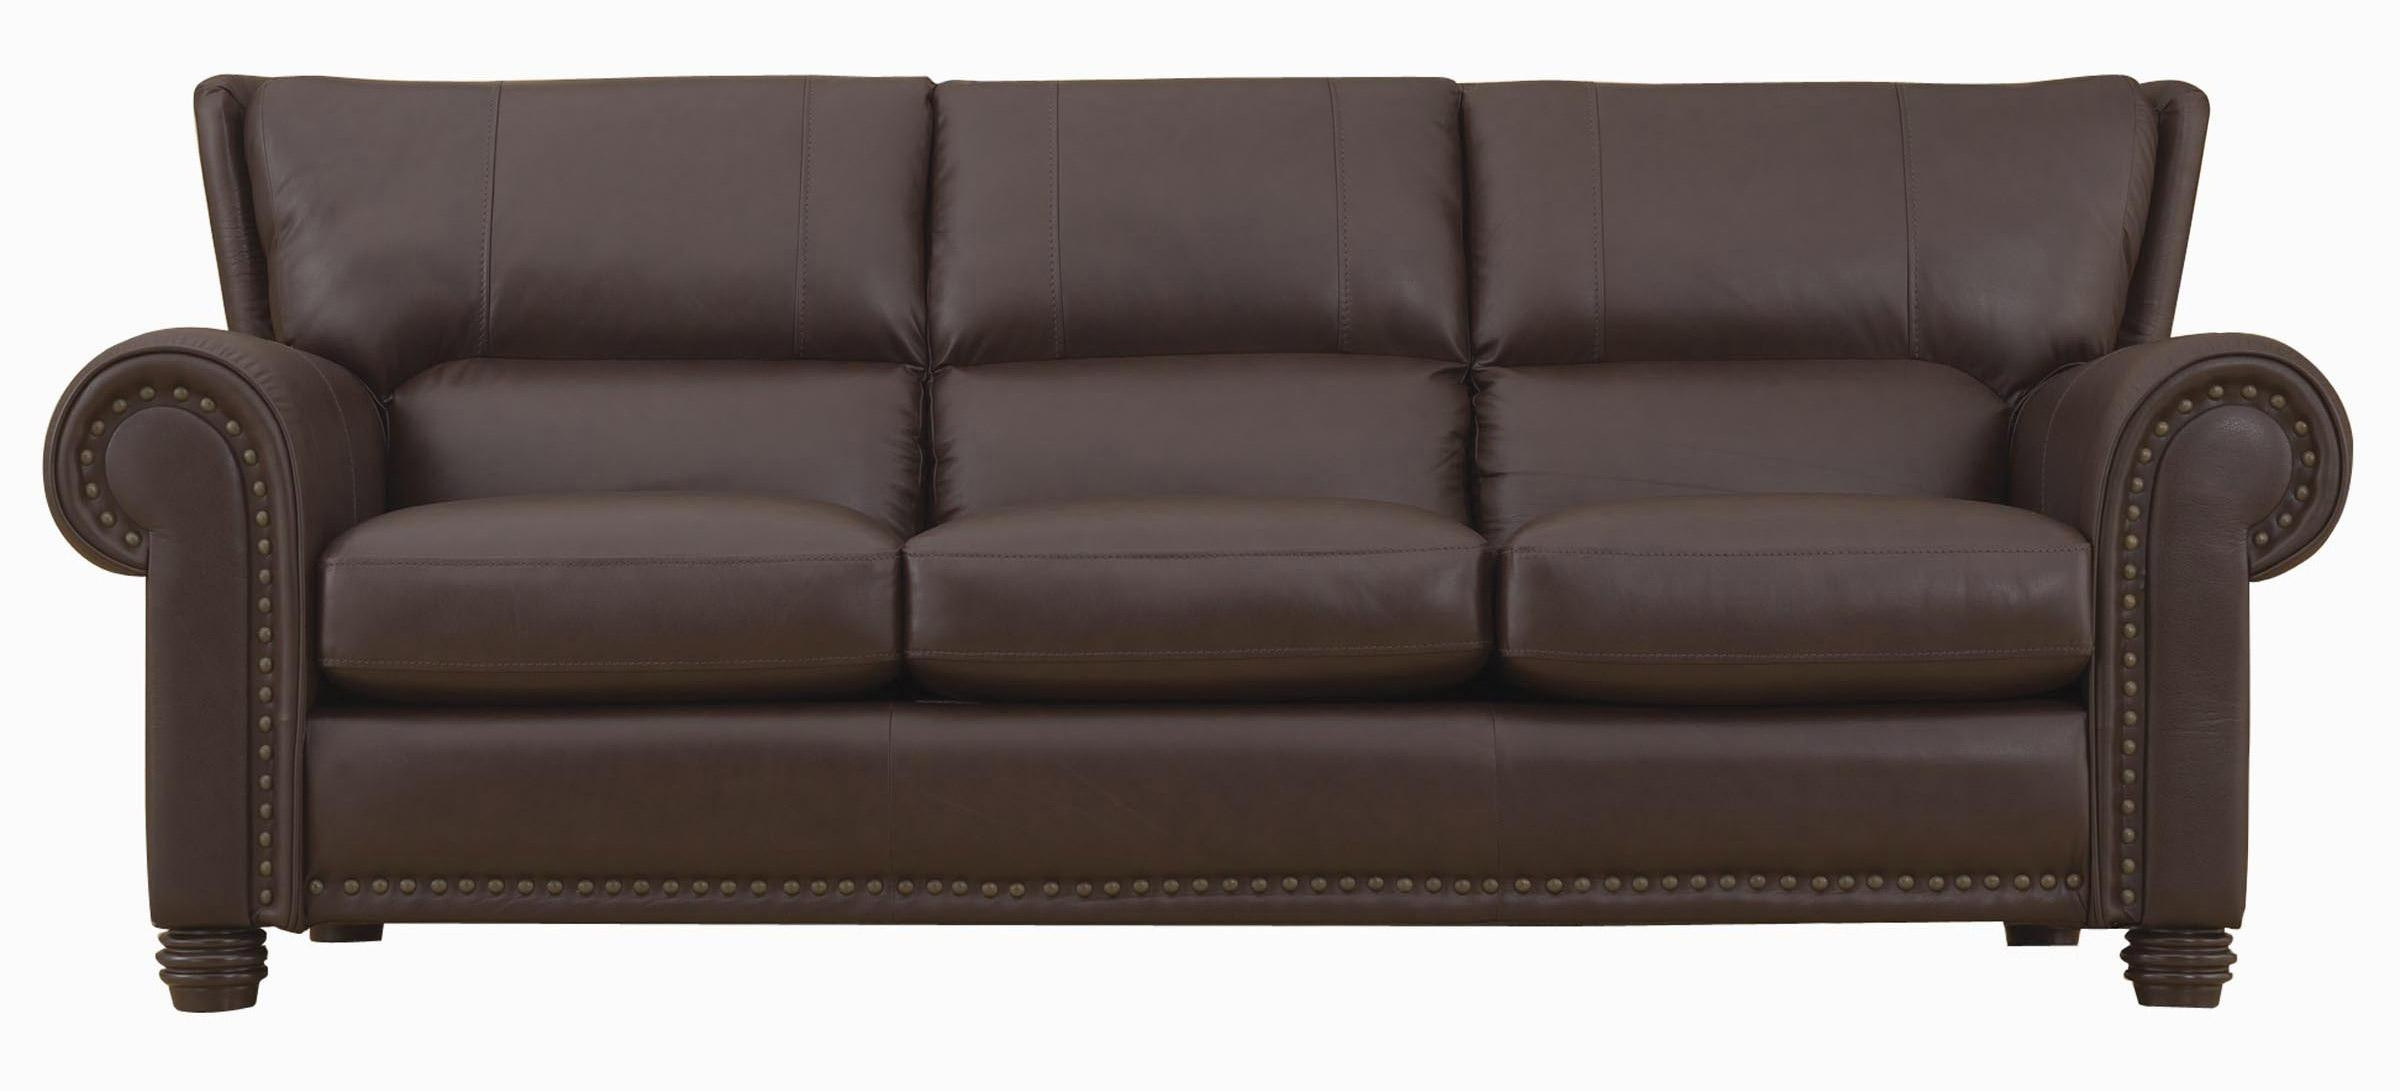 Sofa Windsor – Traditional Style – Jaymar Collection For Windsor Sofas (Image 6 of 20)